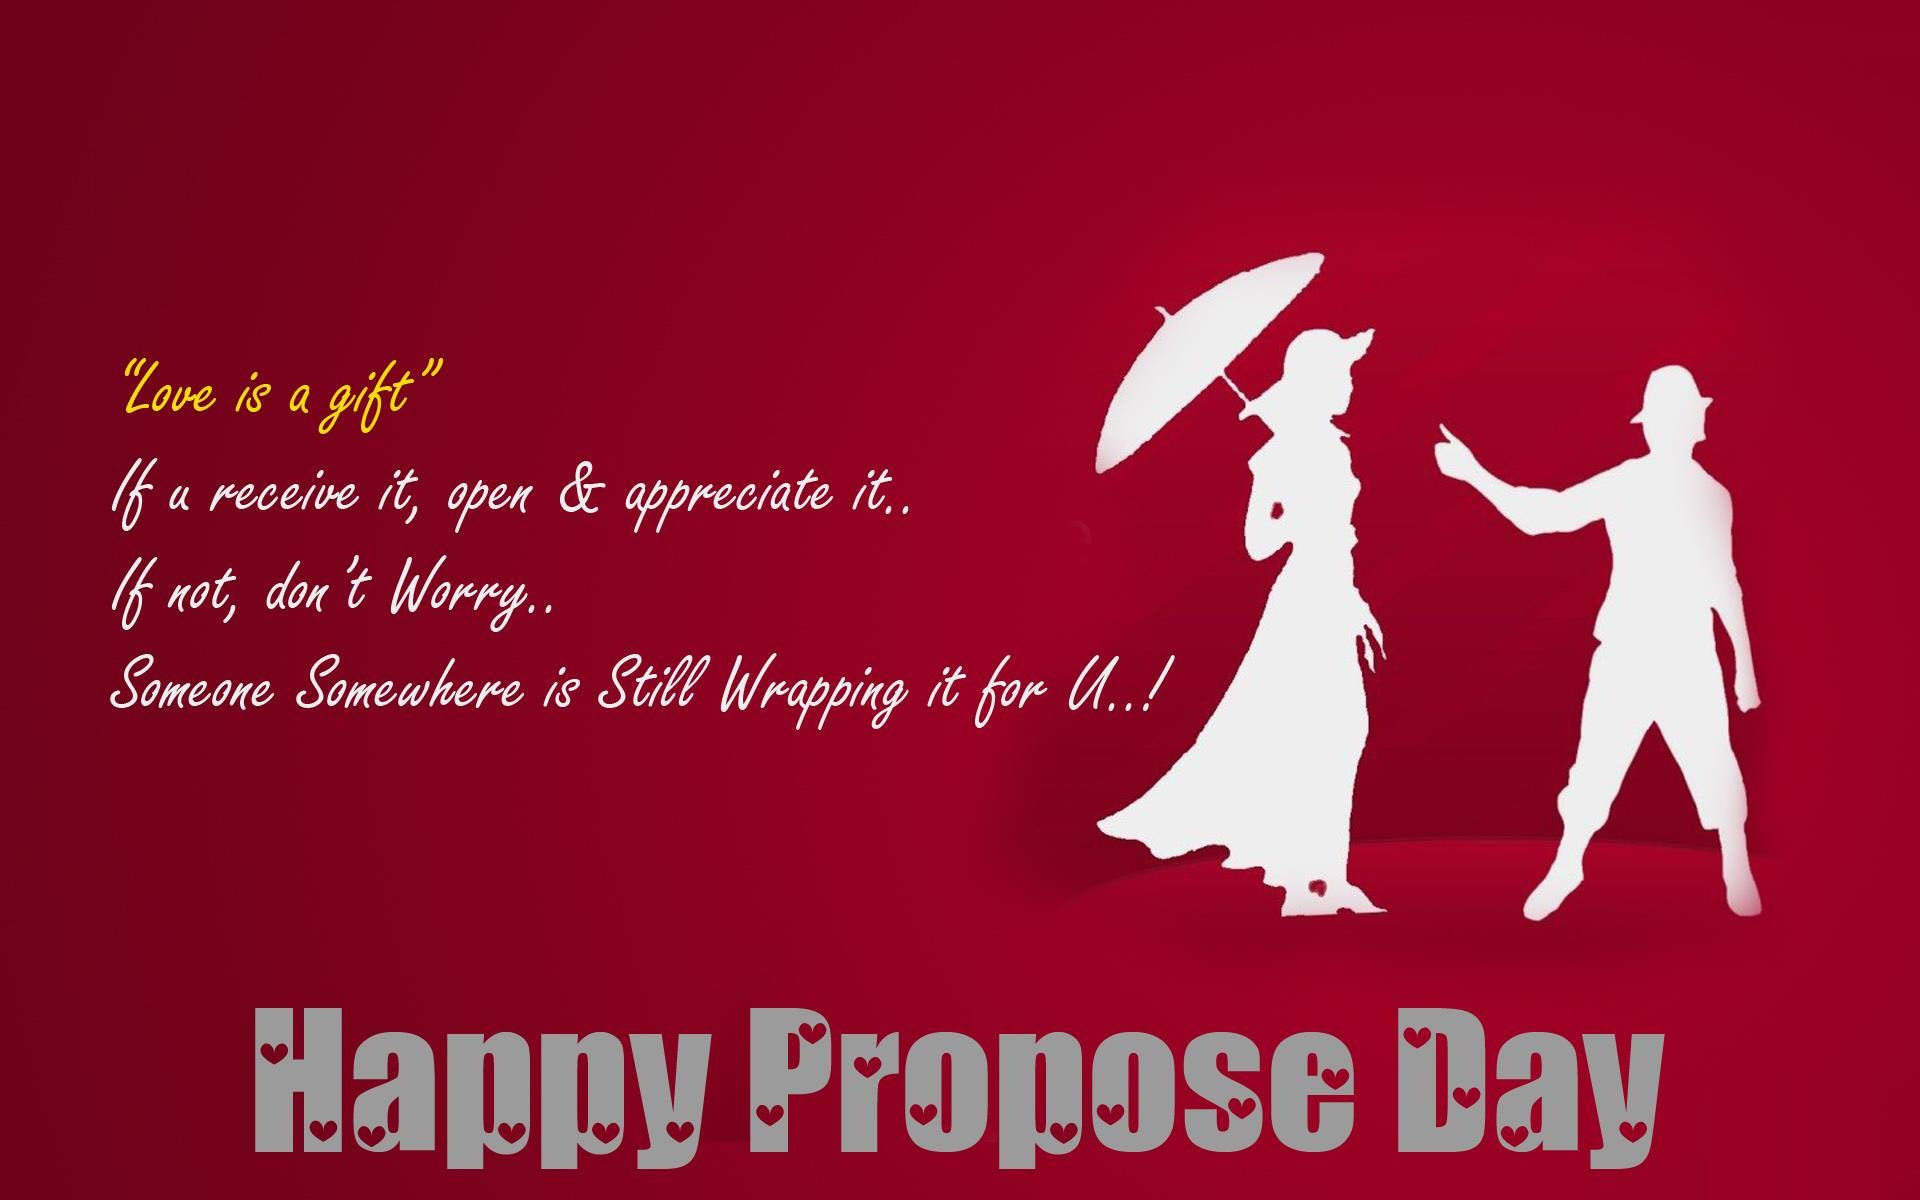 Download happy propose day quotes images pictures wallpapers happy propose day 2018 the day of proposing your lover to say your feelings what you feel for him or her so guys just get propose day quotes kristyandbryce Image collections